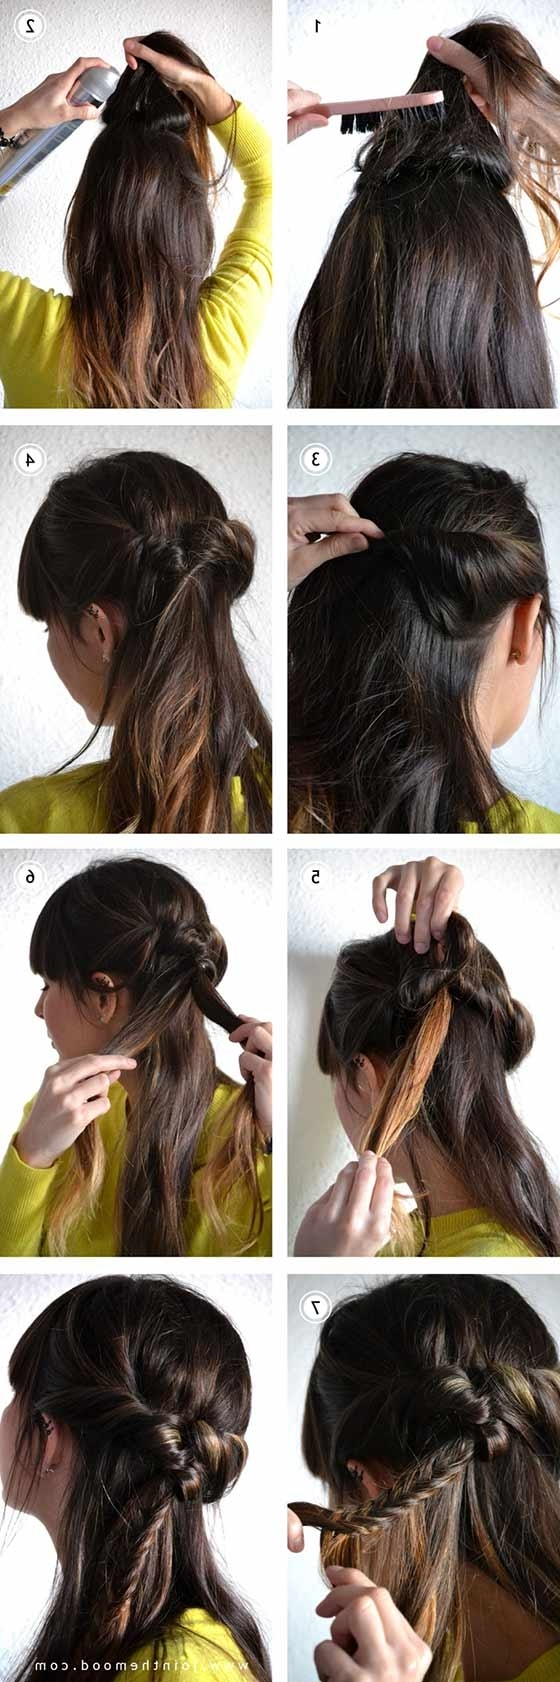 40 Braided Hairstyles For Long Hair Regarding Famous Loosely Braided Ponytail Hairstyles (View 4 of 20)